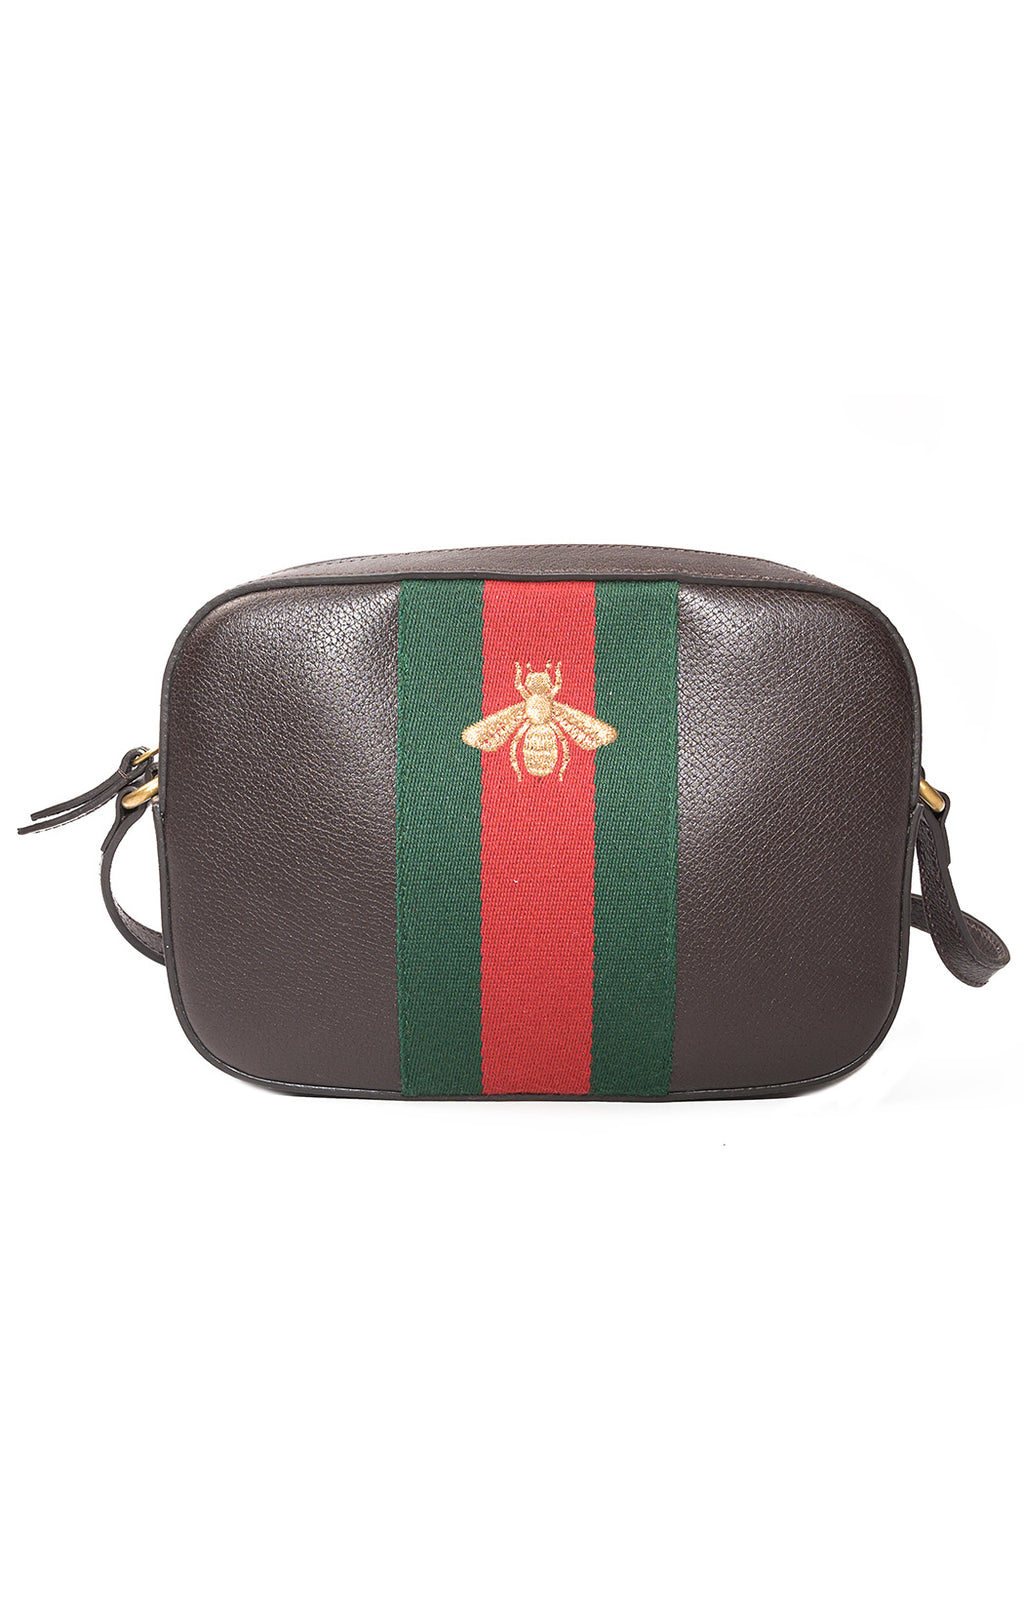 "Front view of GUCCI  Purse Size: 9"" W x 6.25"" H x 2.25"" D"